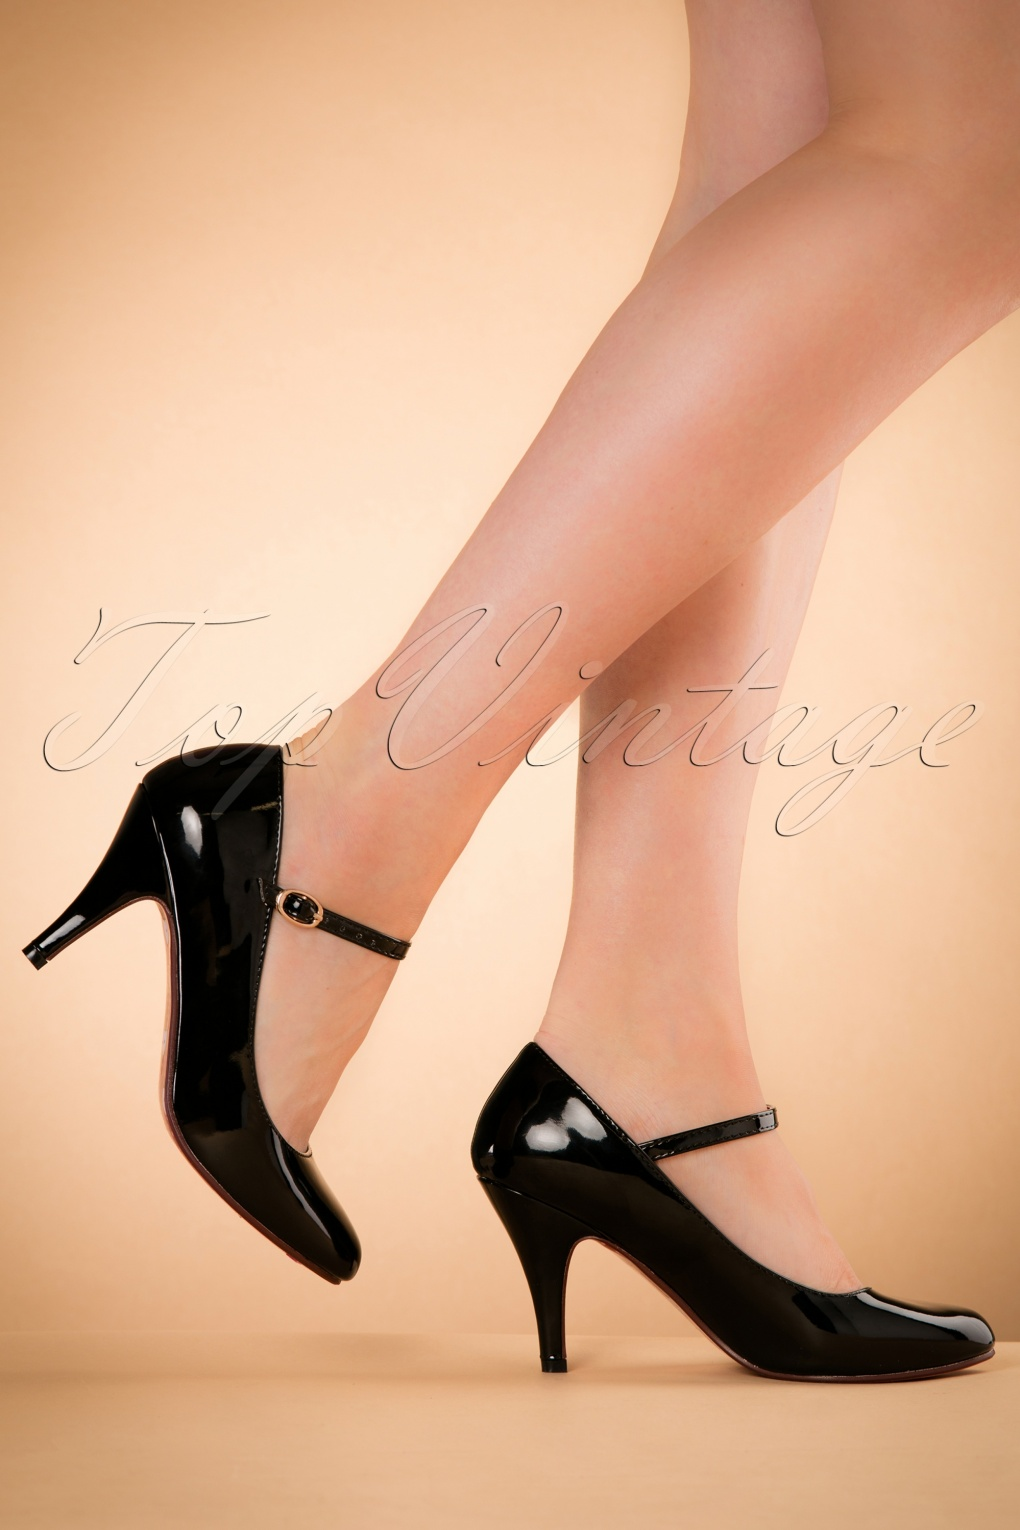 1960s Style Shoes 60s Jean Jeanie Lacquer Pumps in Black £49.62 AT vintagedancer.com